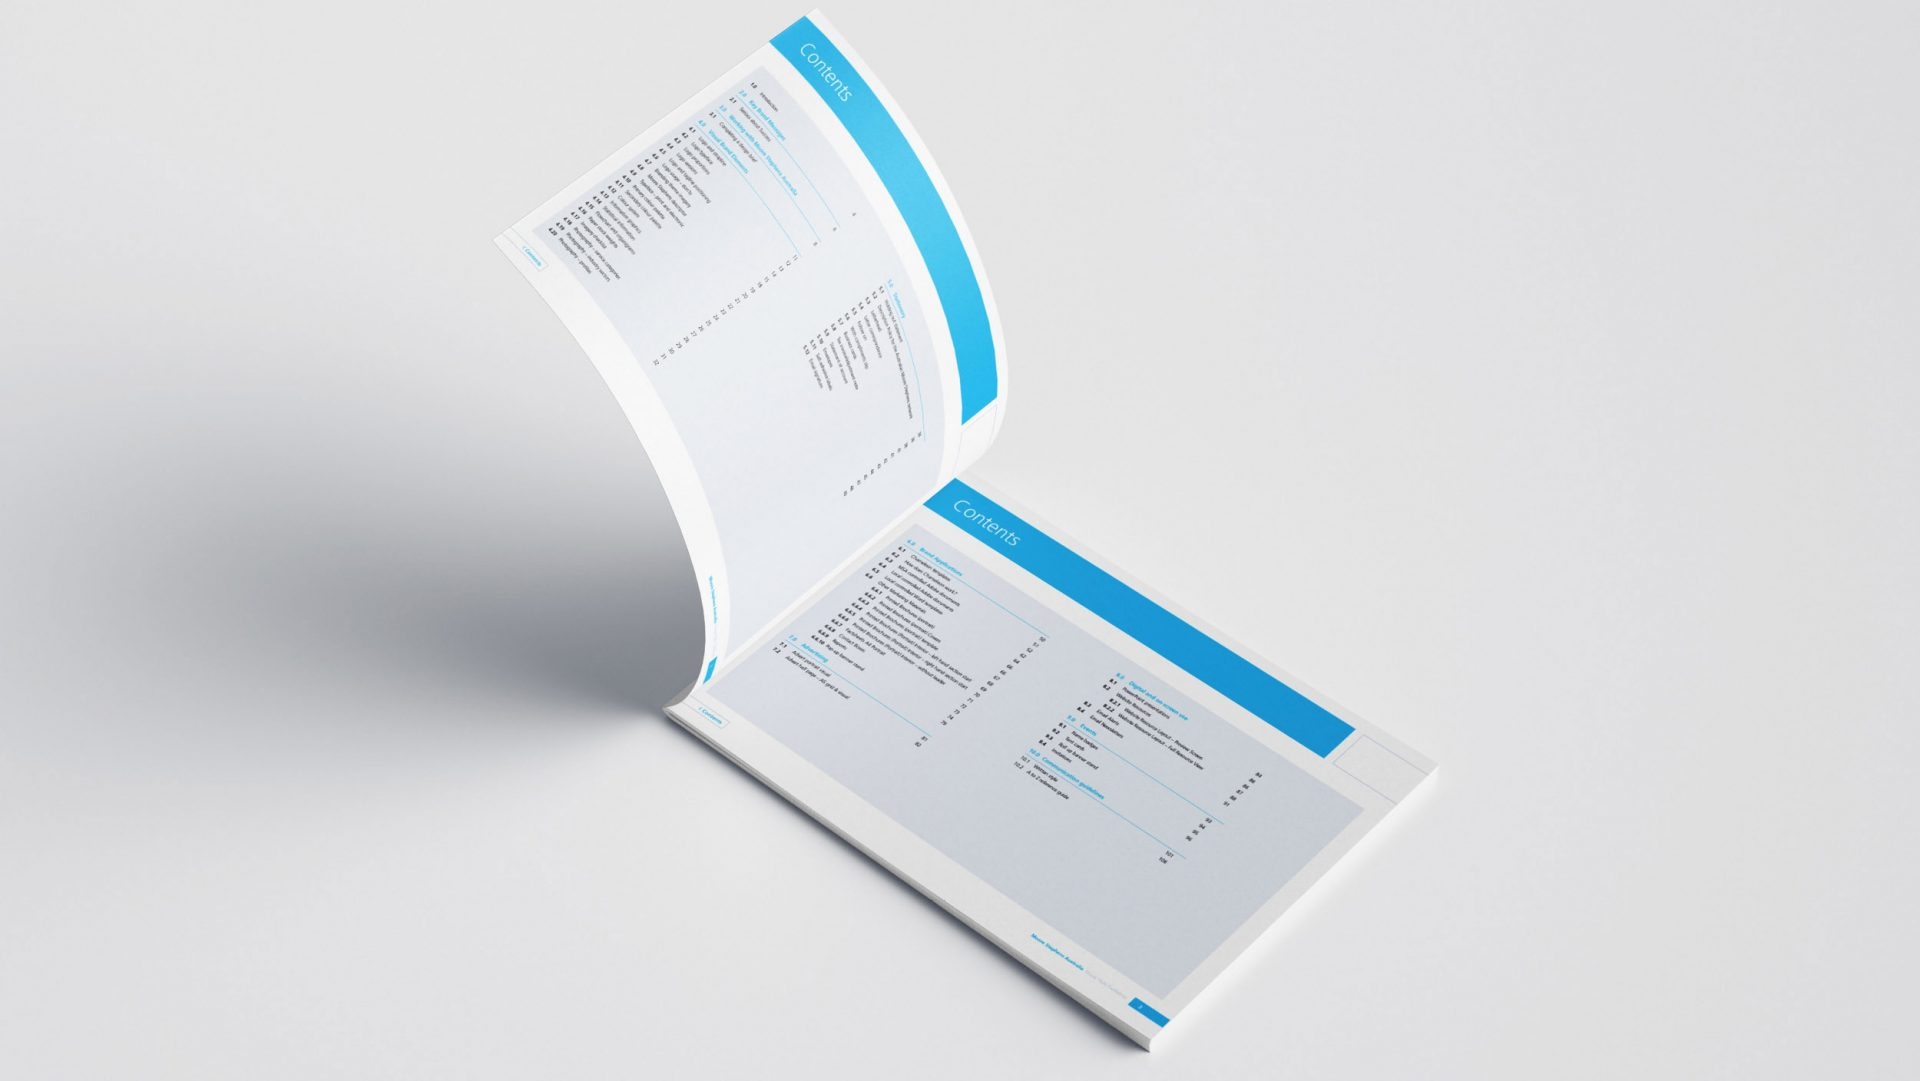 Moore Stephens Brand guidelines contents page